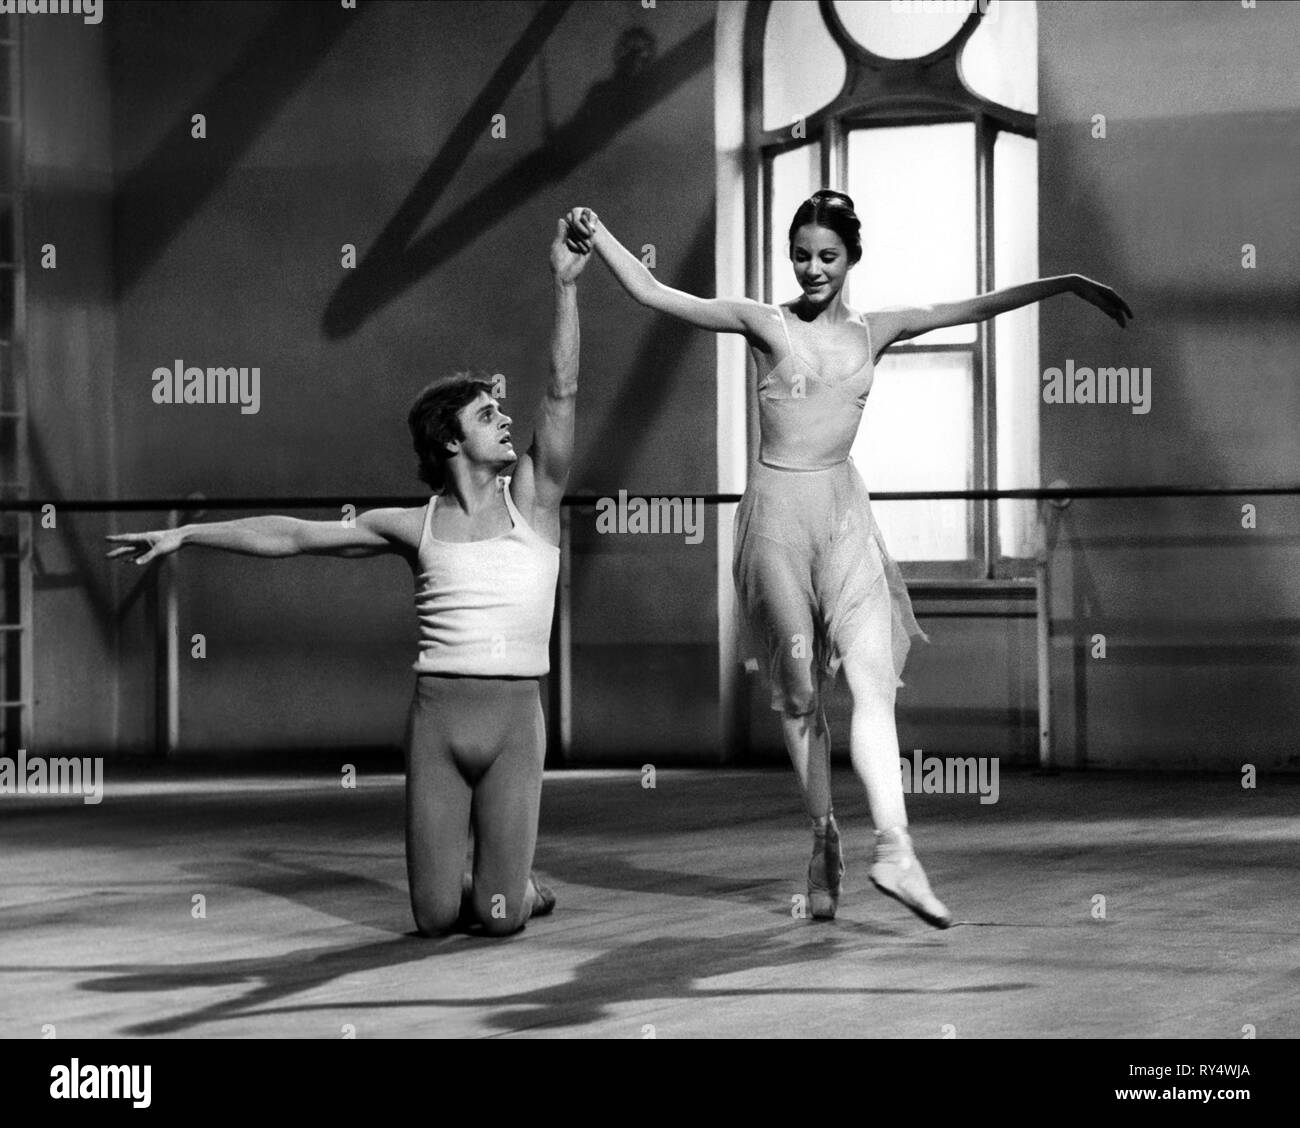 BARYSHNIKOV,BROWNE, THE TURNING POINT, 1977 - Stock Image